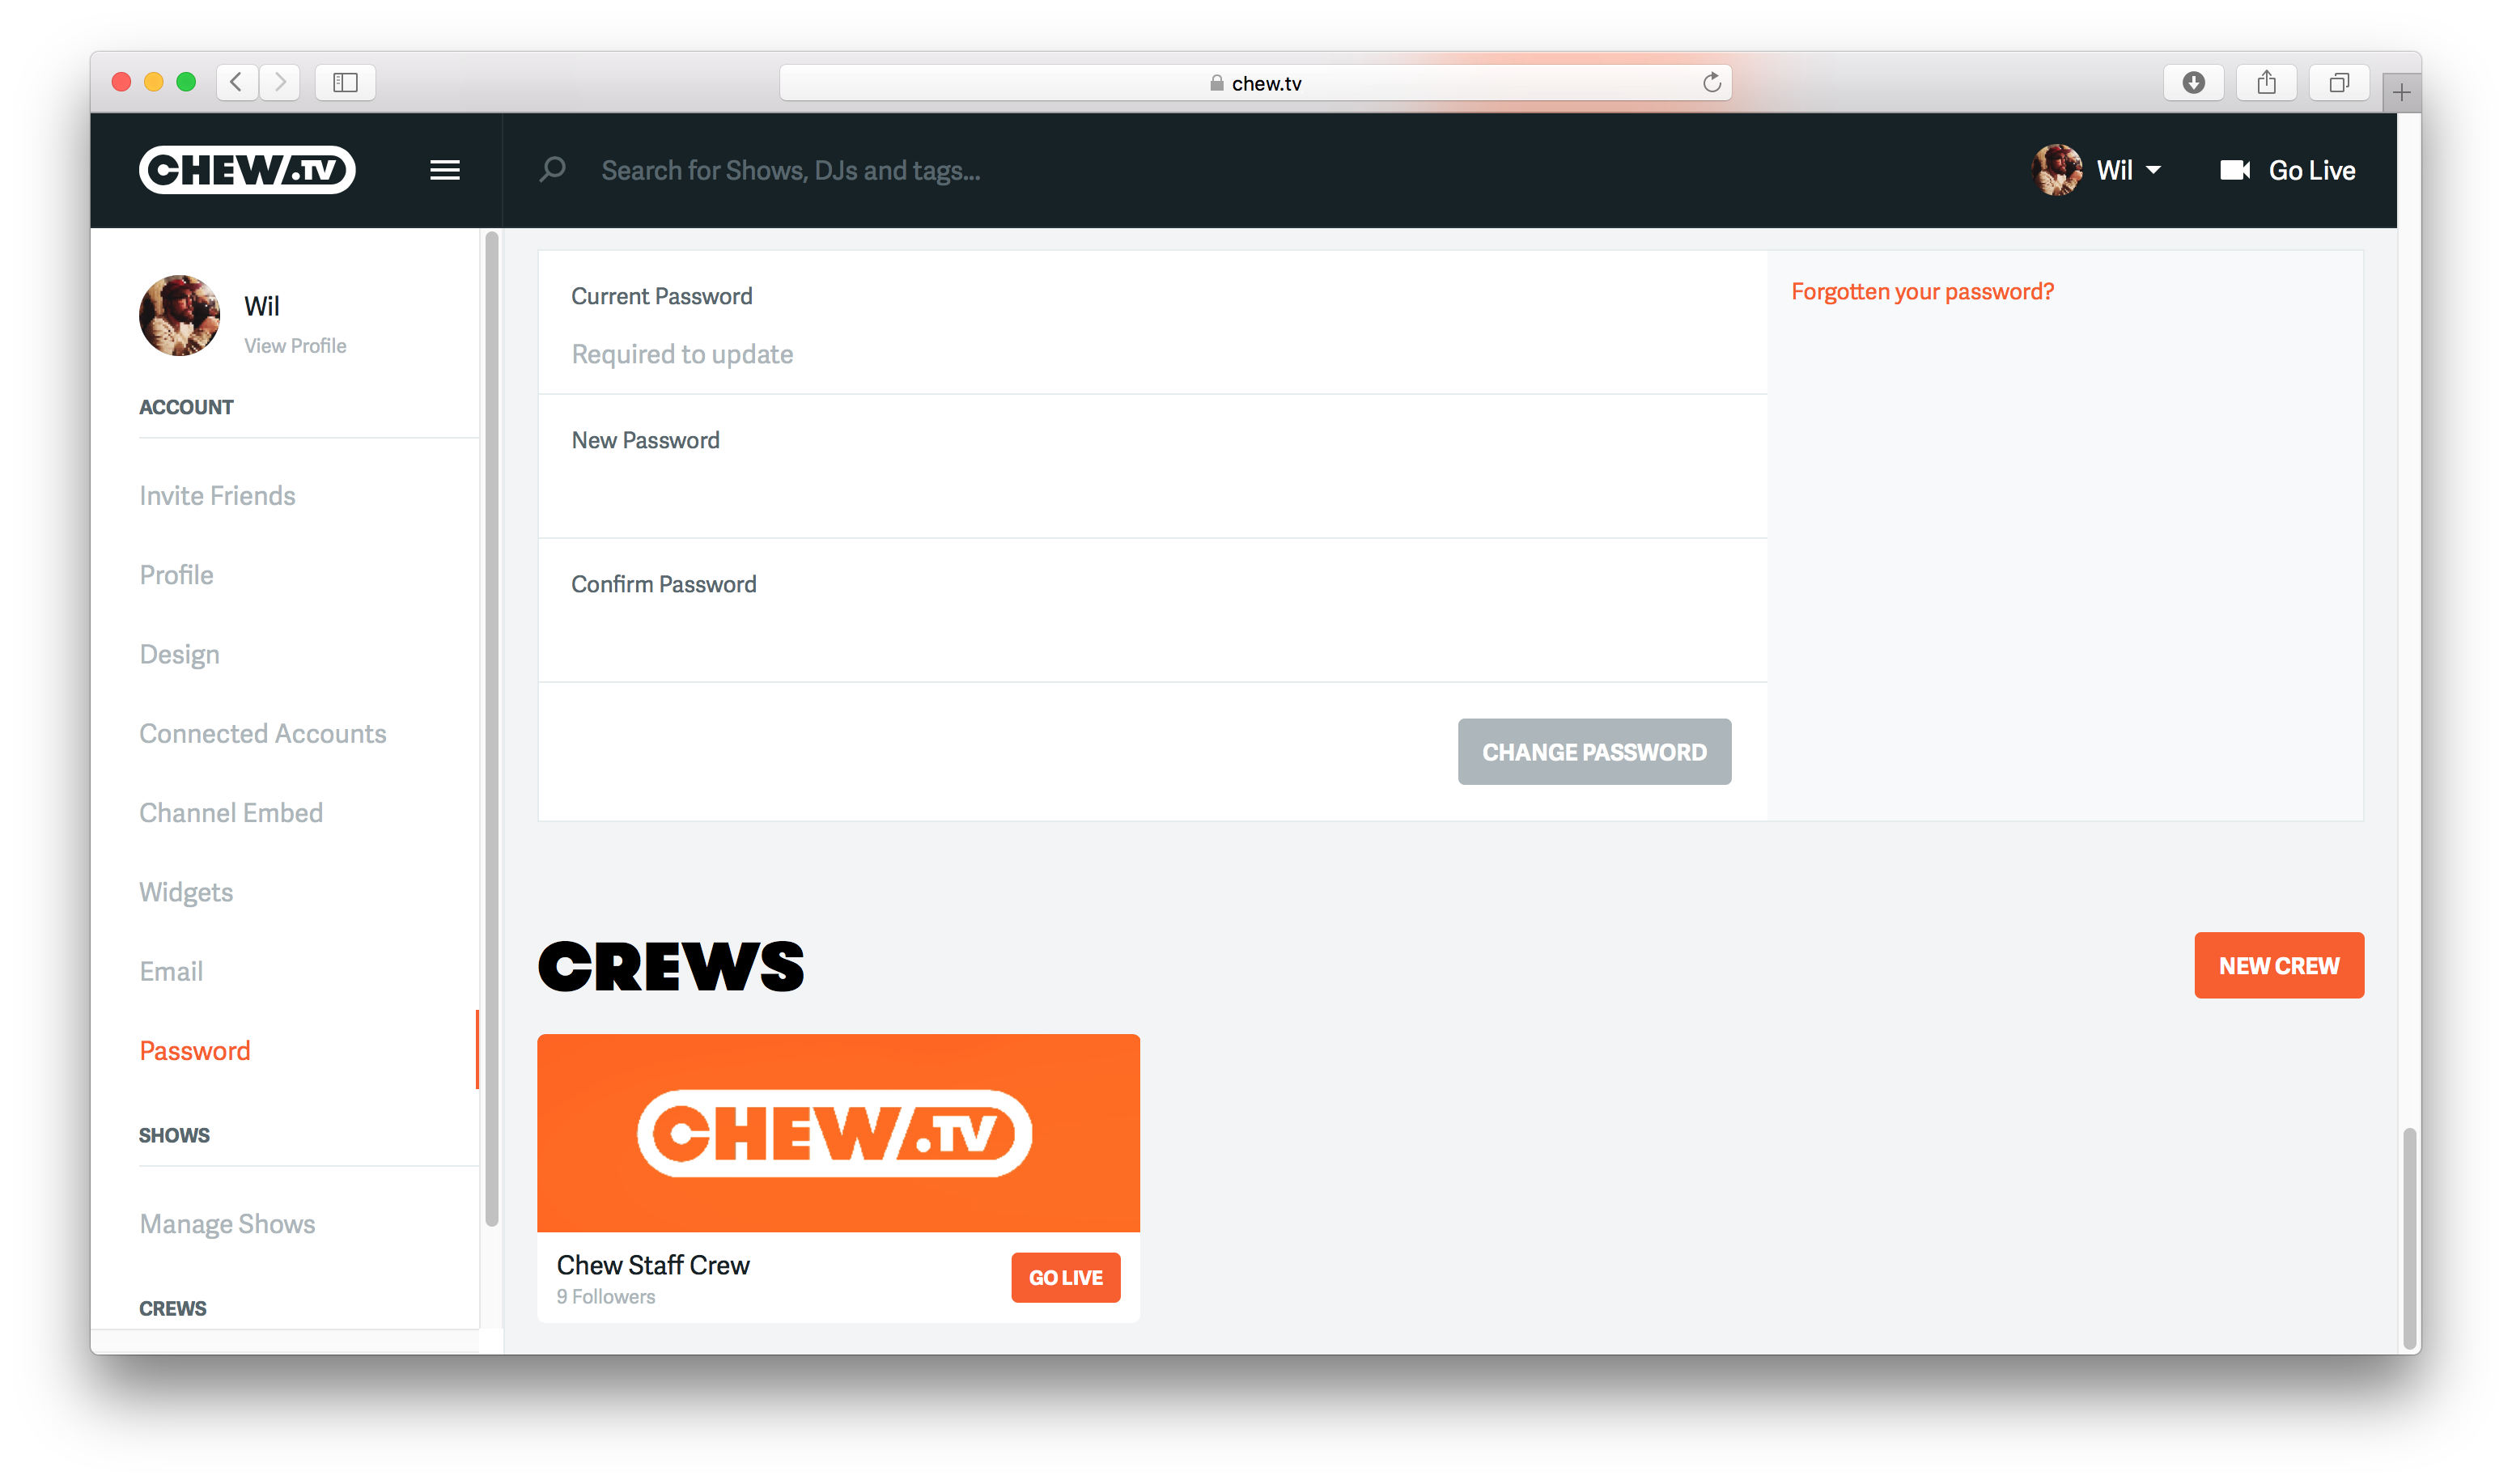 Crews on account page